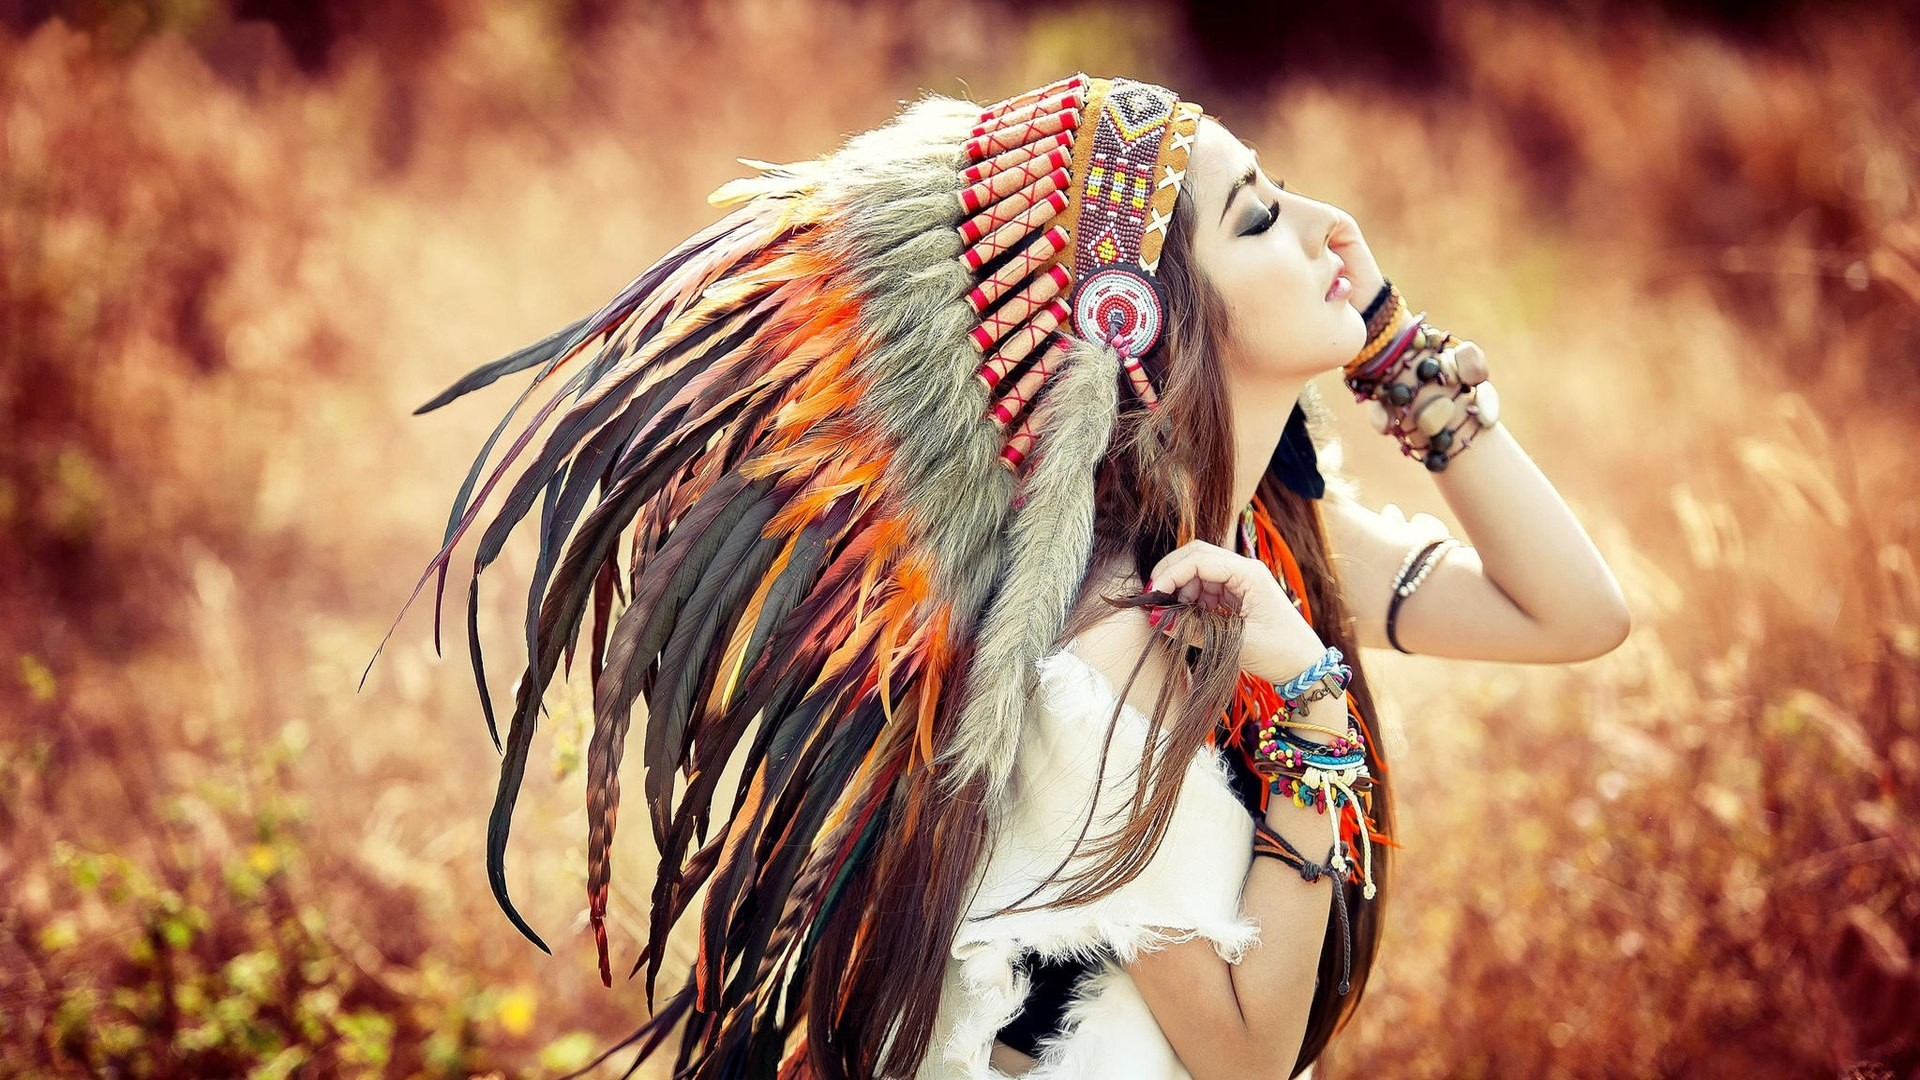 People 1920x1080 brunette headdress Asian feathers closed eyes makeup nature plants women women outdoors face